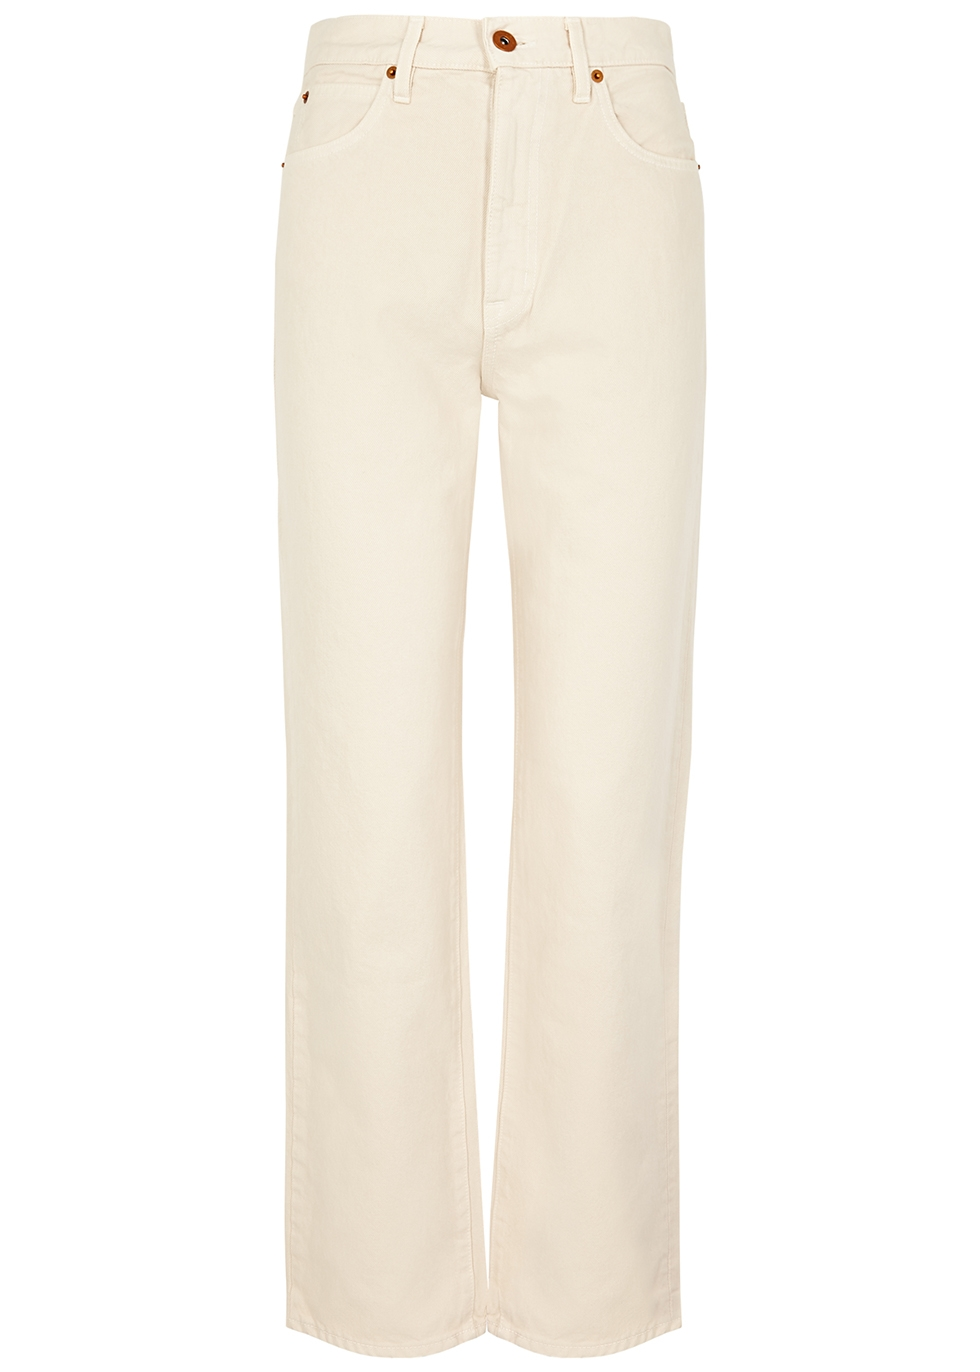 London ecru straight-leg jeans by SLVRLAKE, available on harveynichols.com for ₹300 Kendall Jenner Pants Exact Product